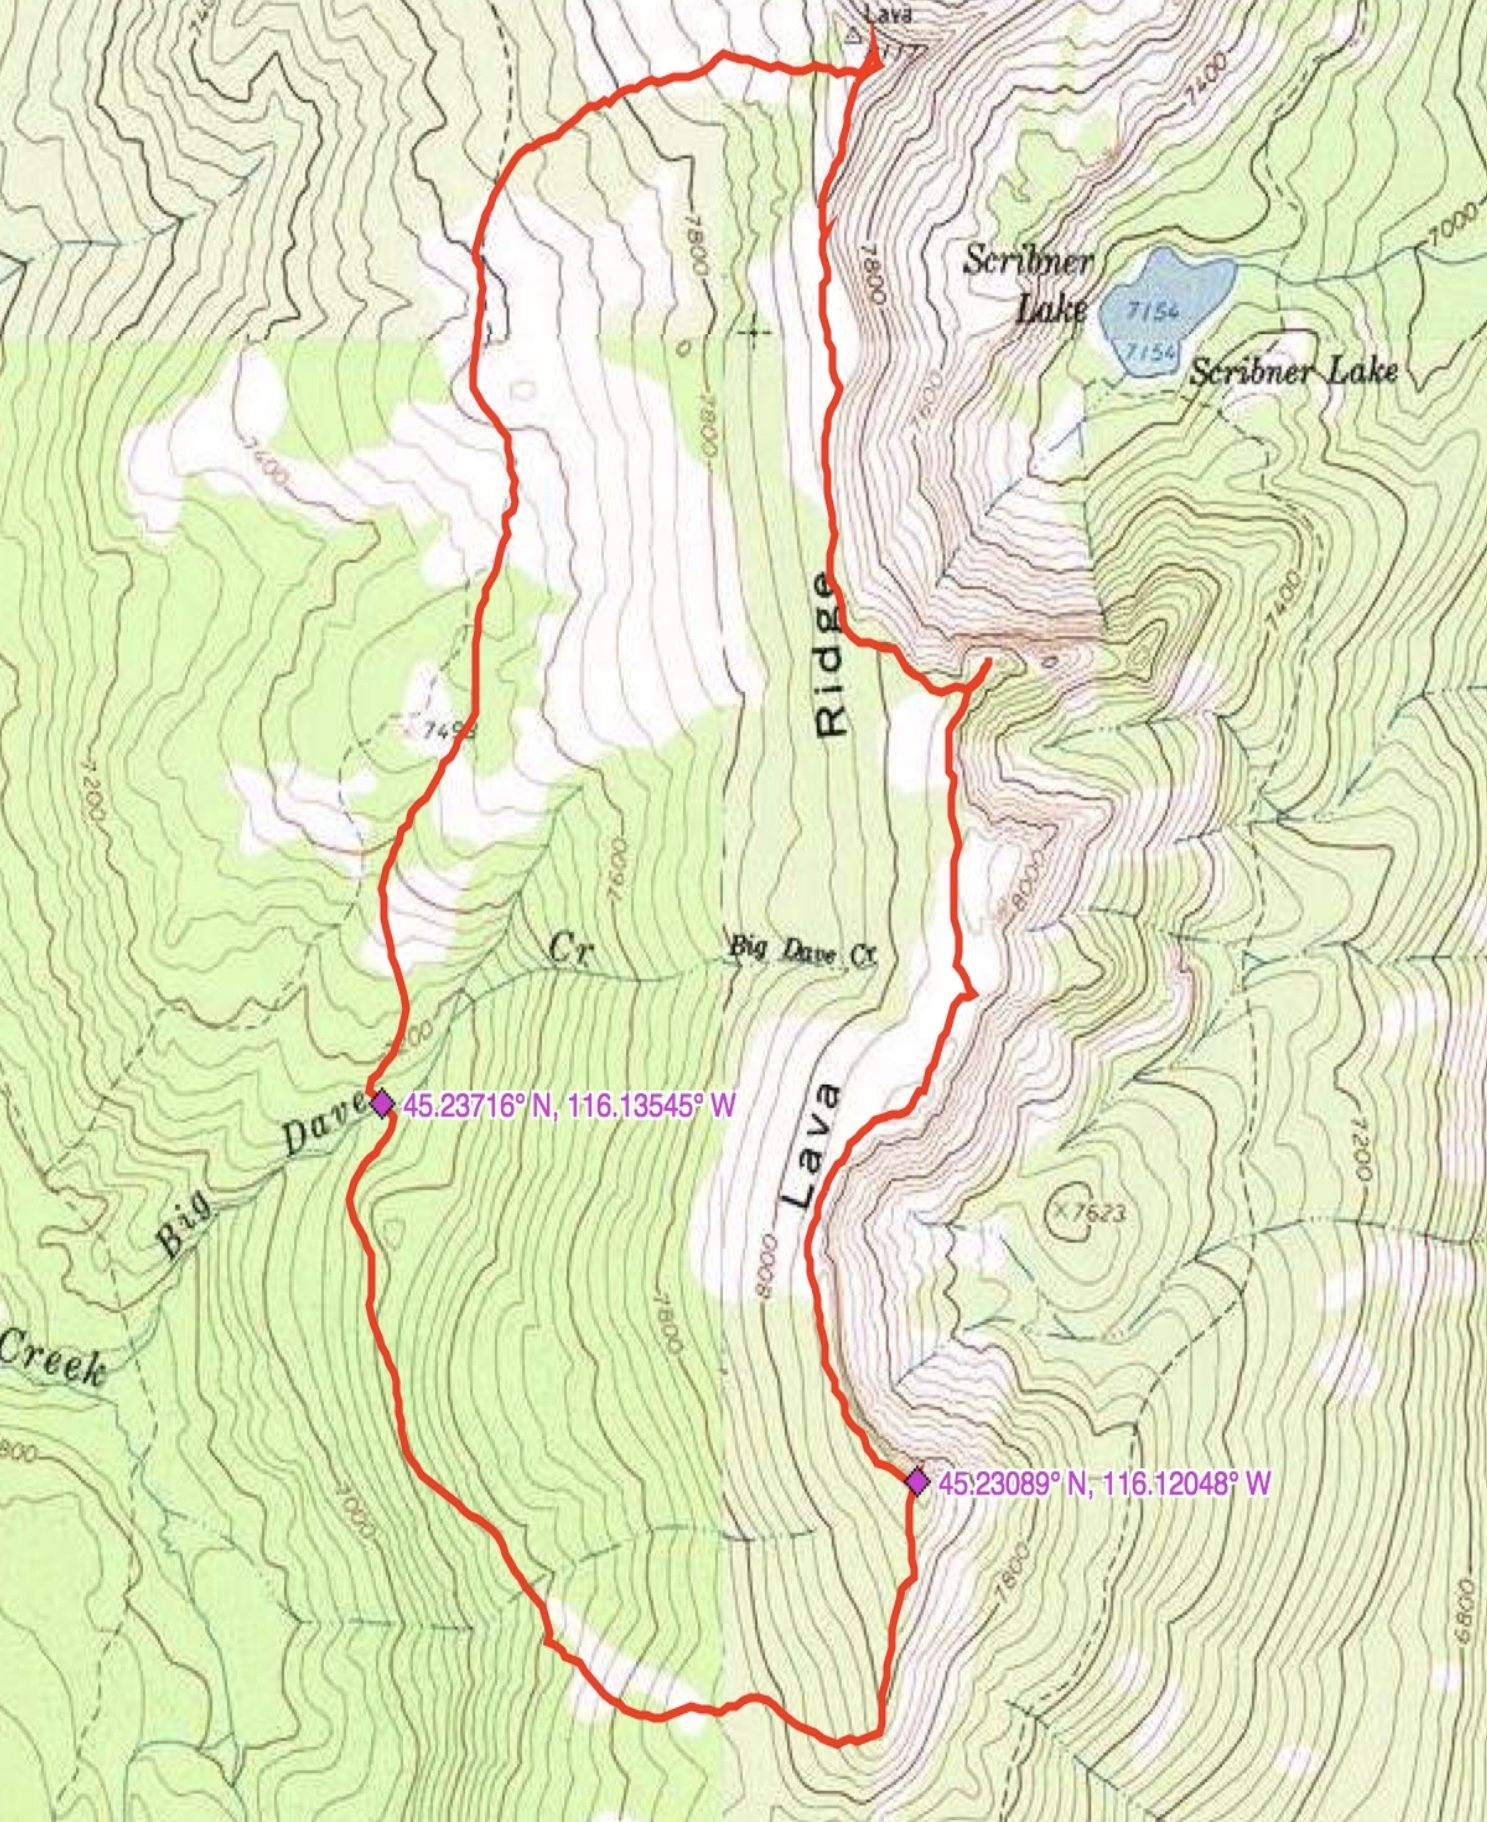 John Platt's GPS track for his loop hike.